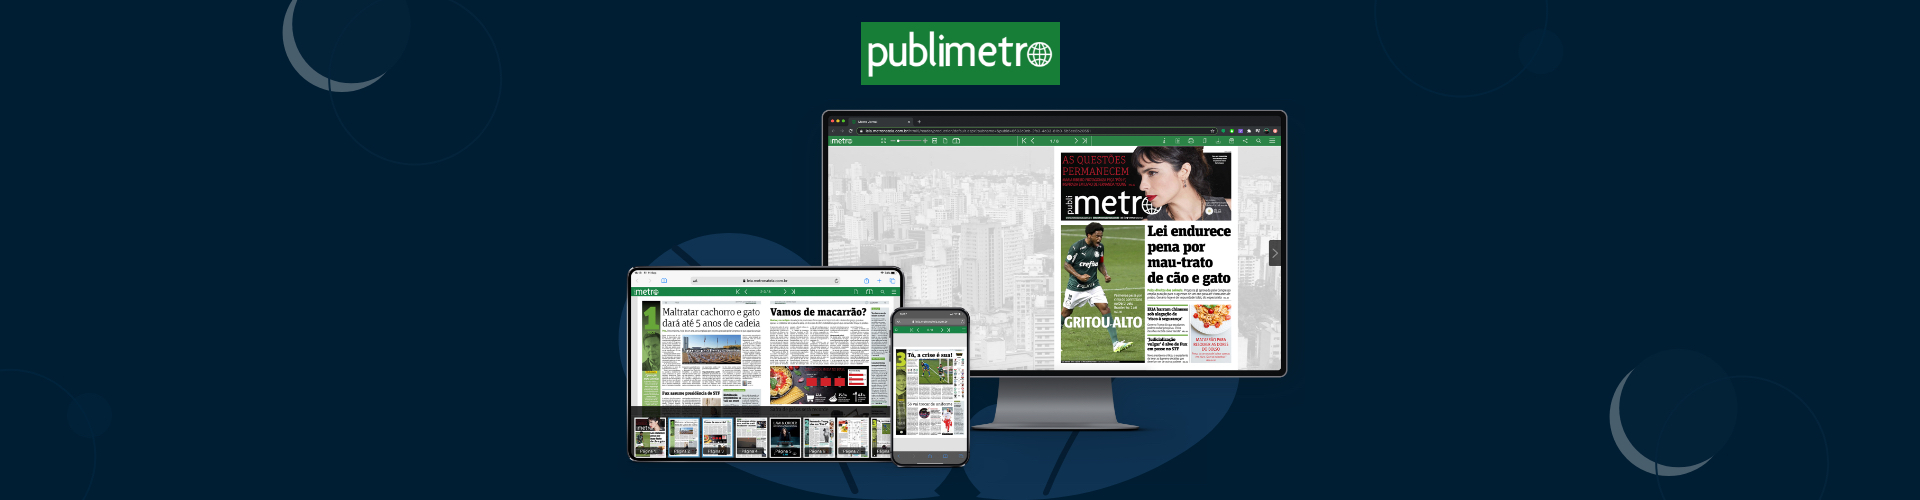 PageSuite and Metro Jornal São Paulo Collaborate on New Digital Strategy